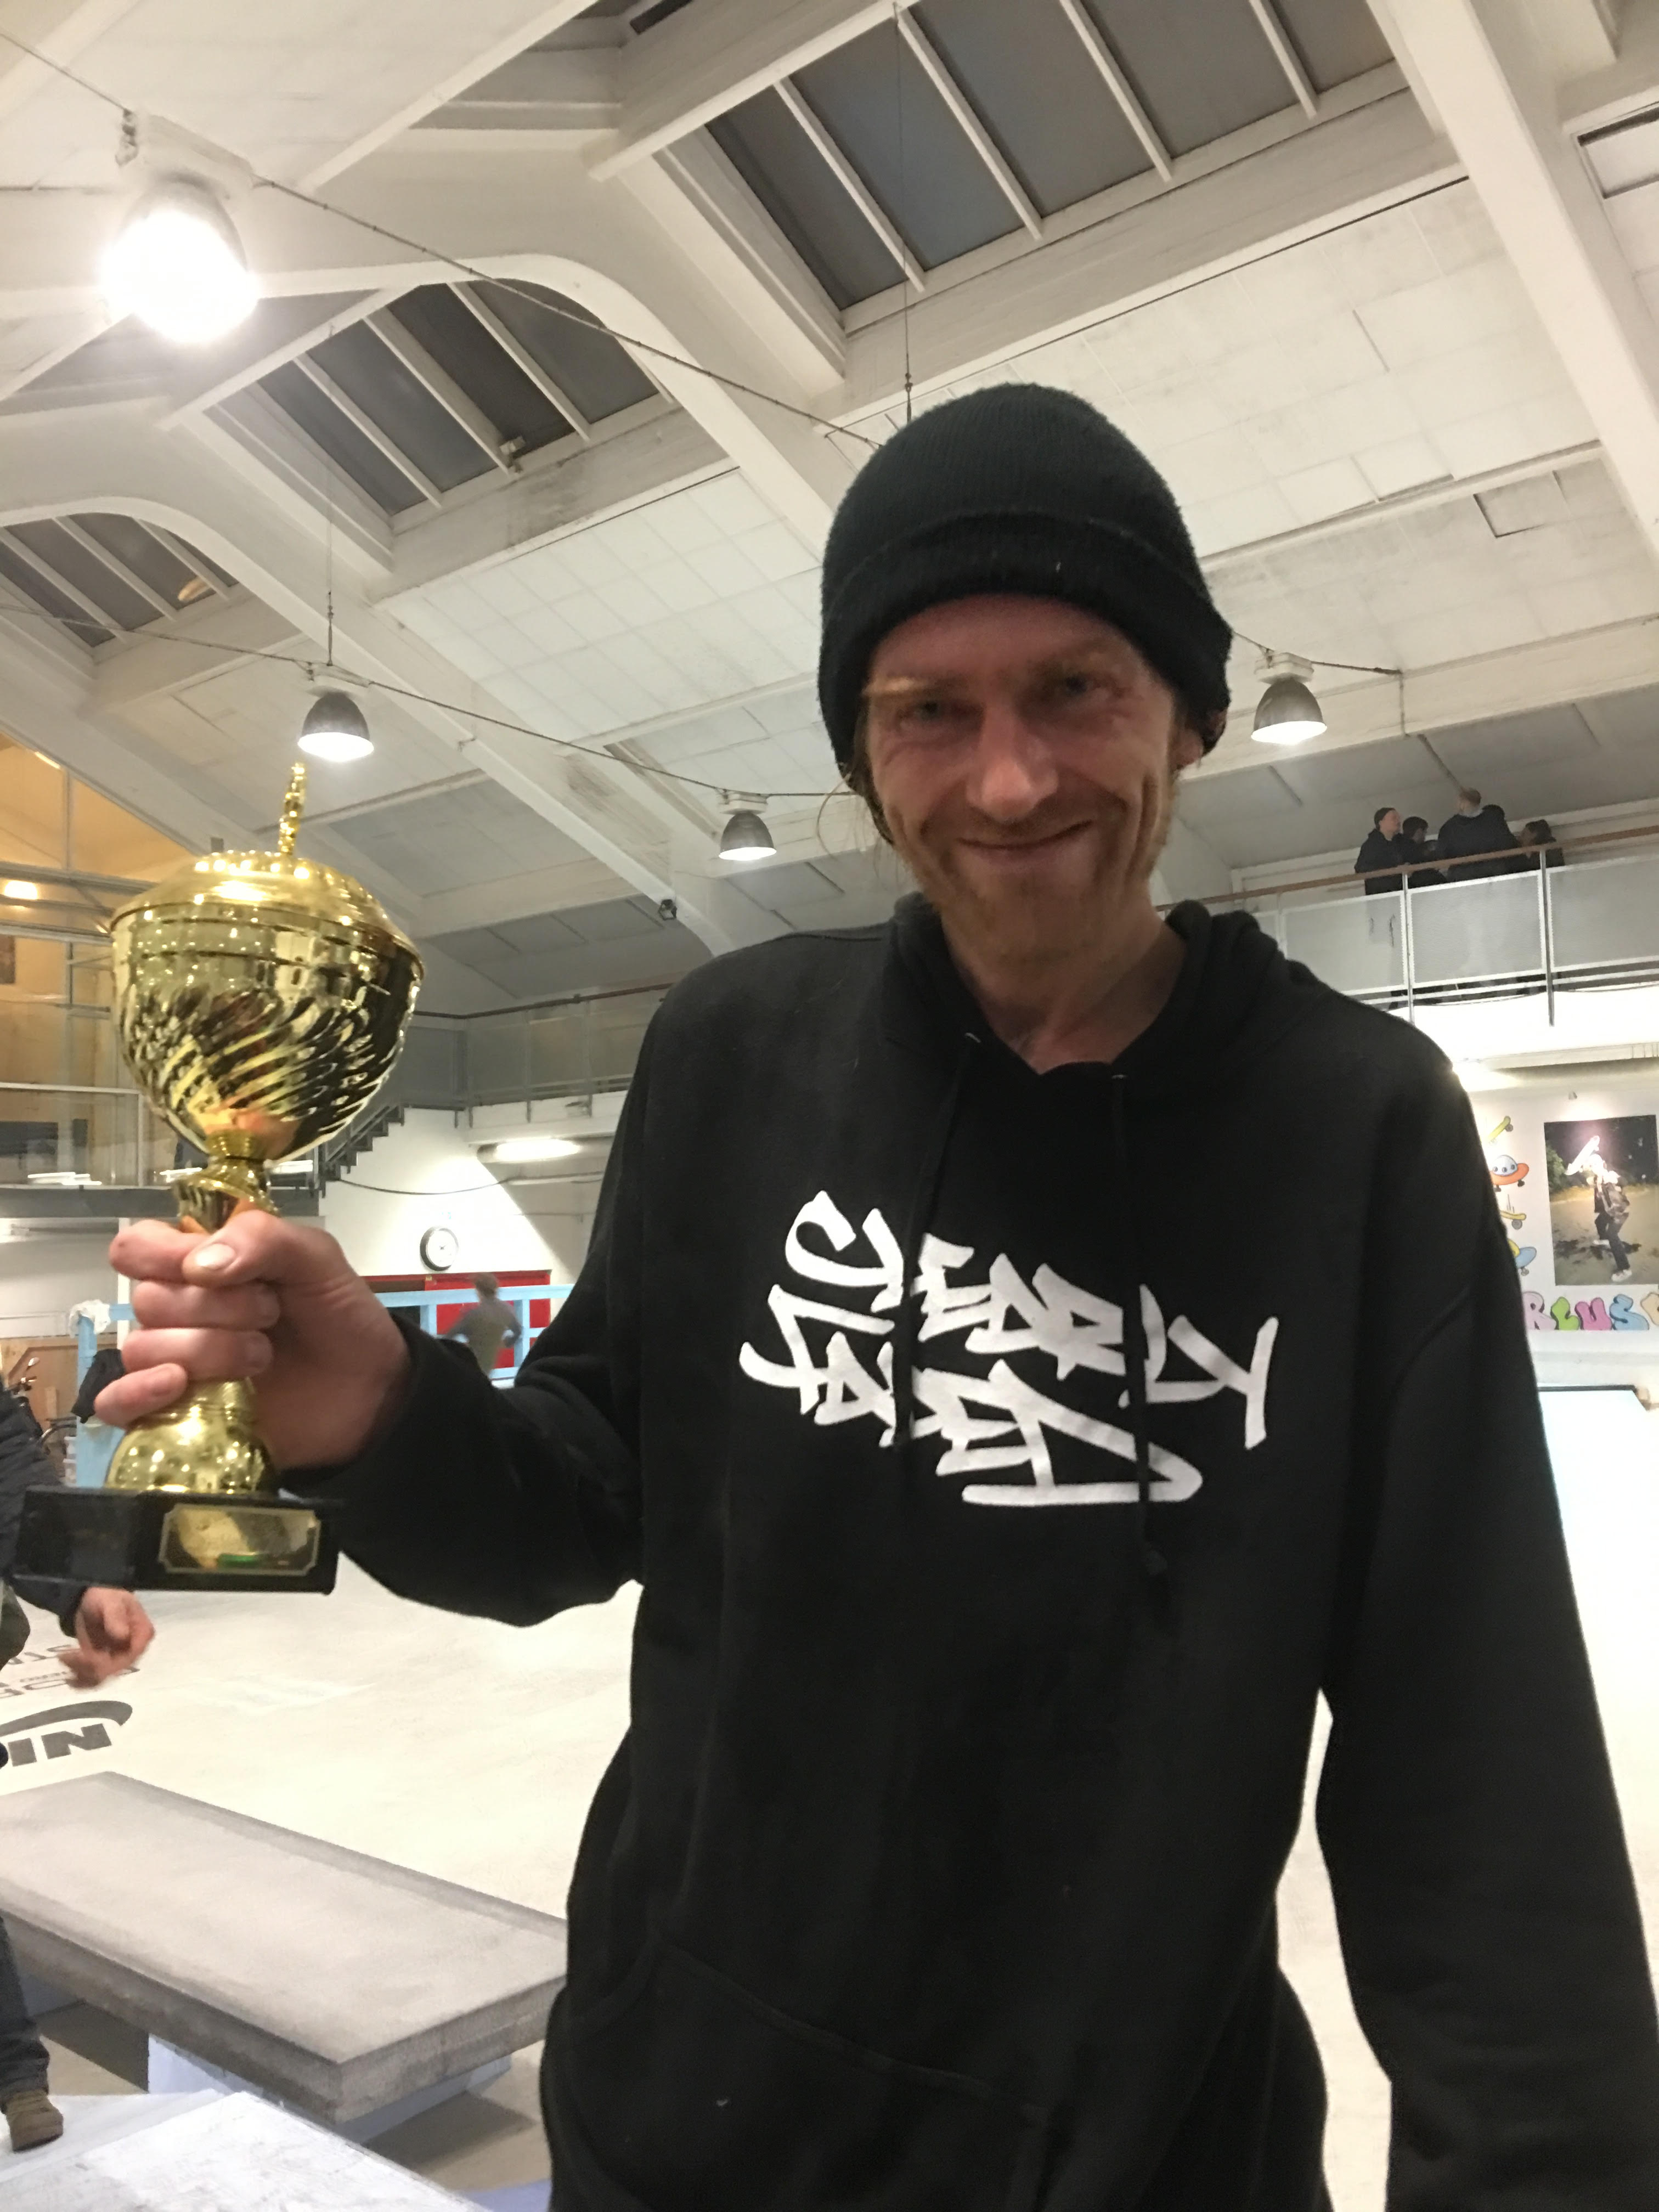 Nico Crafty won Streetmasters 2016